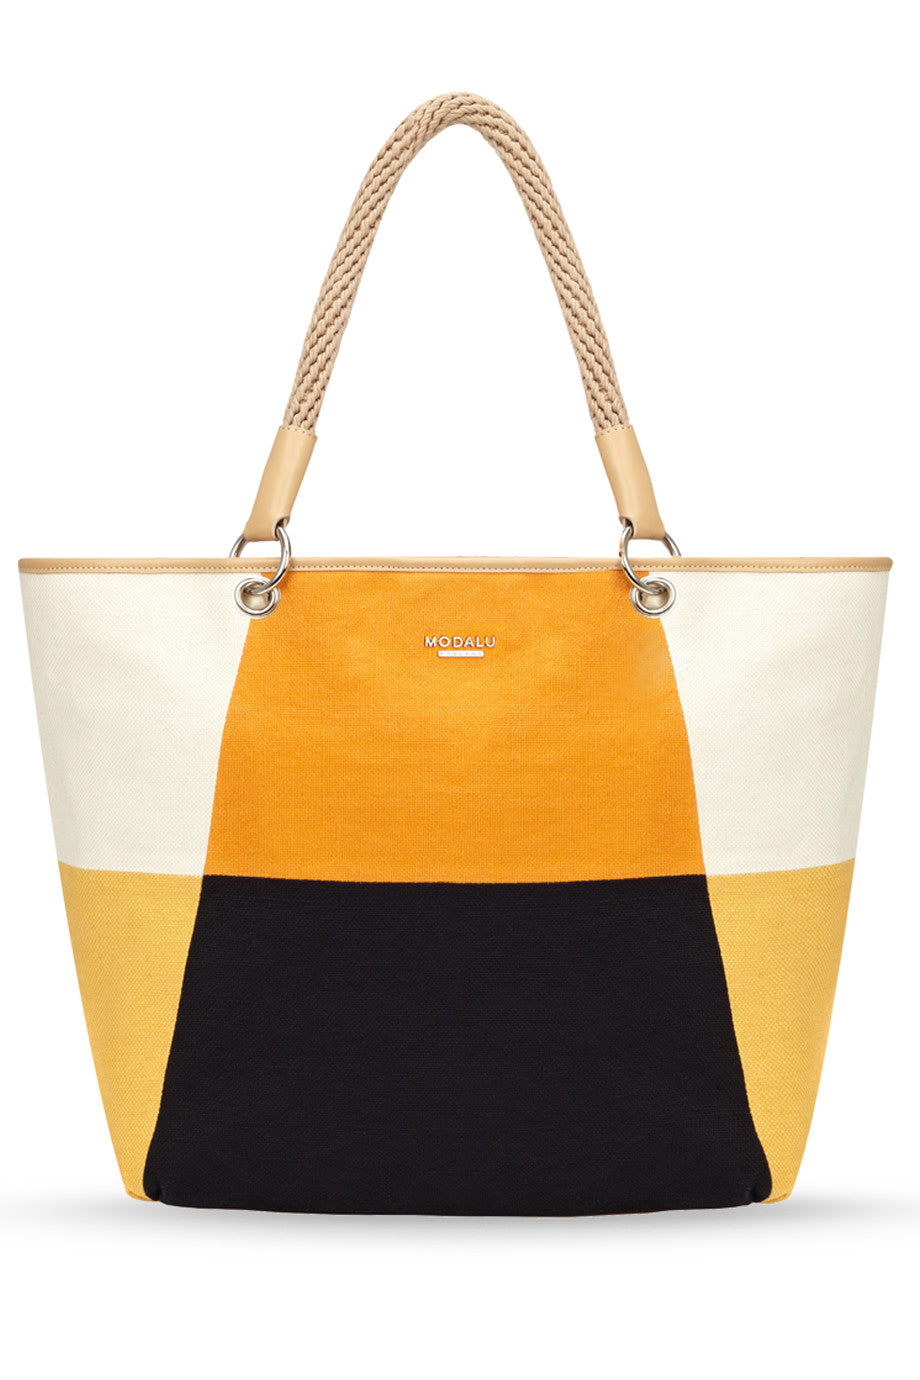 MODALU BOXY Orange Mix Medium Shopper Bag – PRET-A-BEAUTE.COM f3006100f4d89